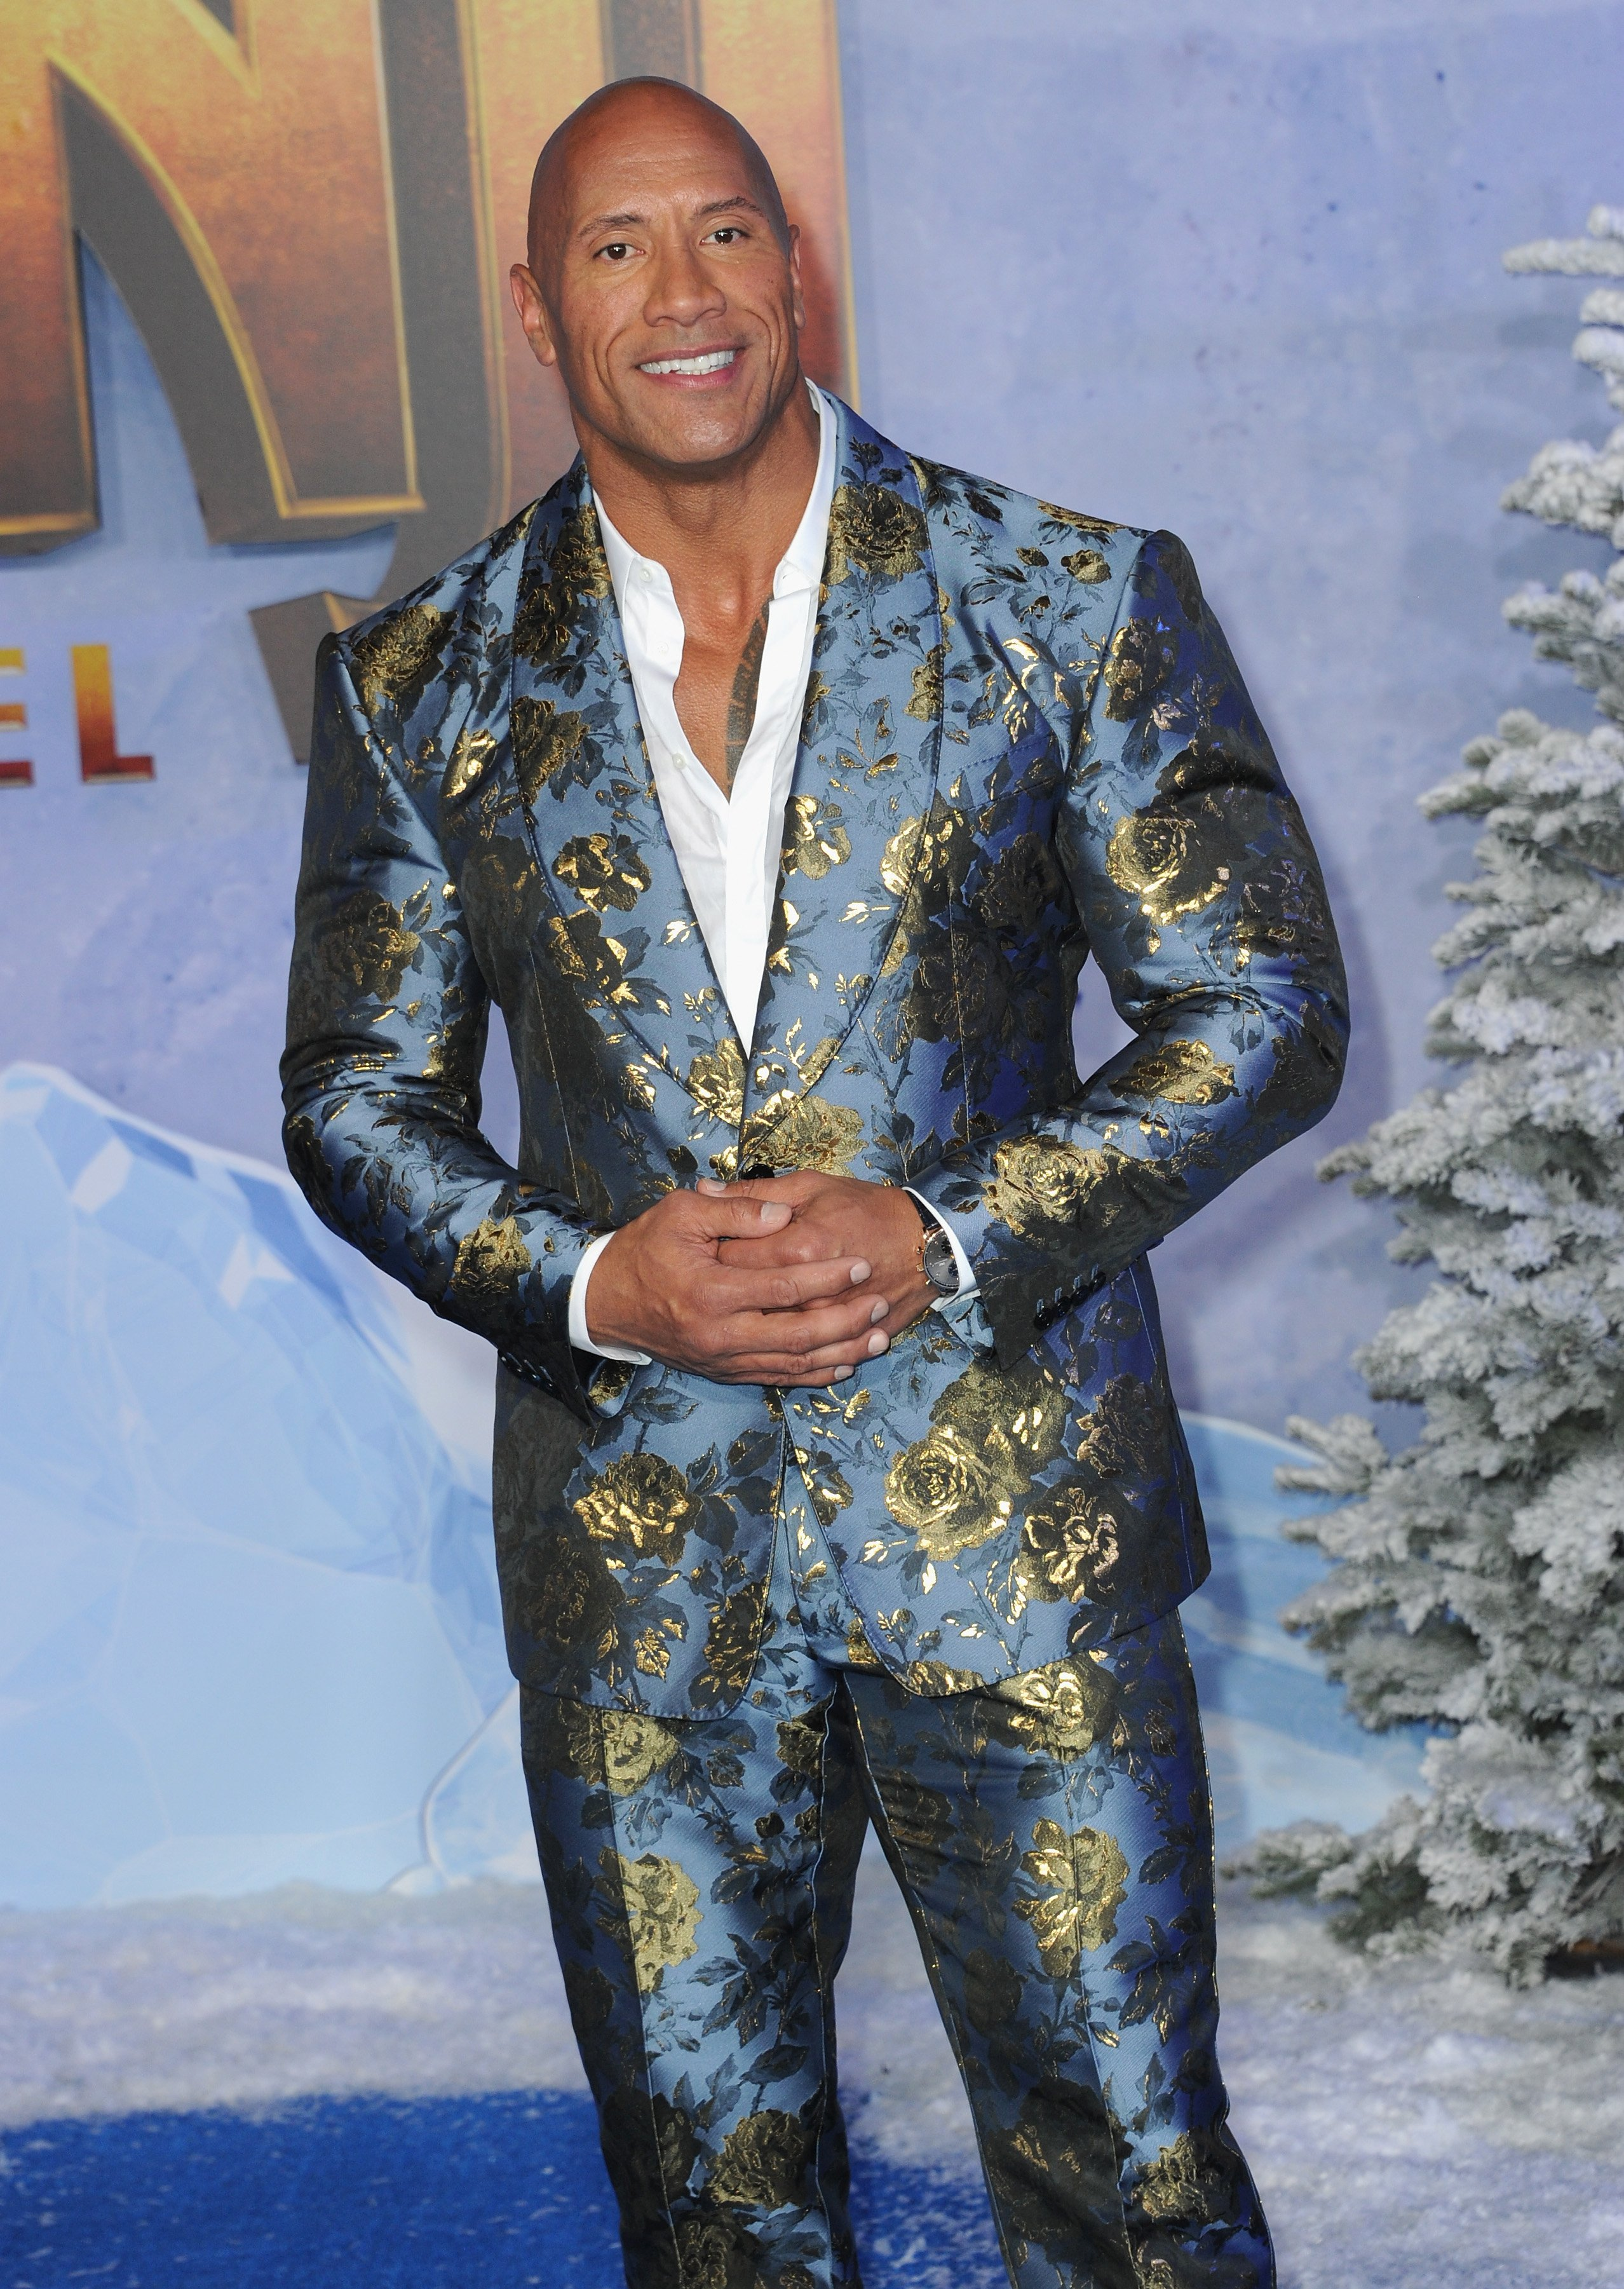 """Dwayne Johnson attends the premiere of """"Jumanji: The Next Level"""" in Hollywood, California on December 9, 2019 